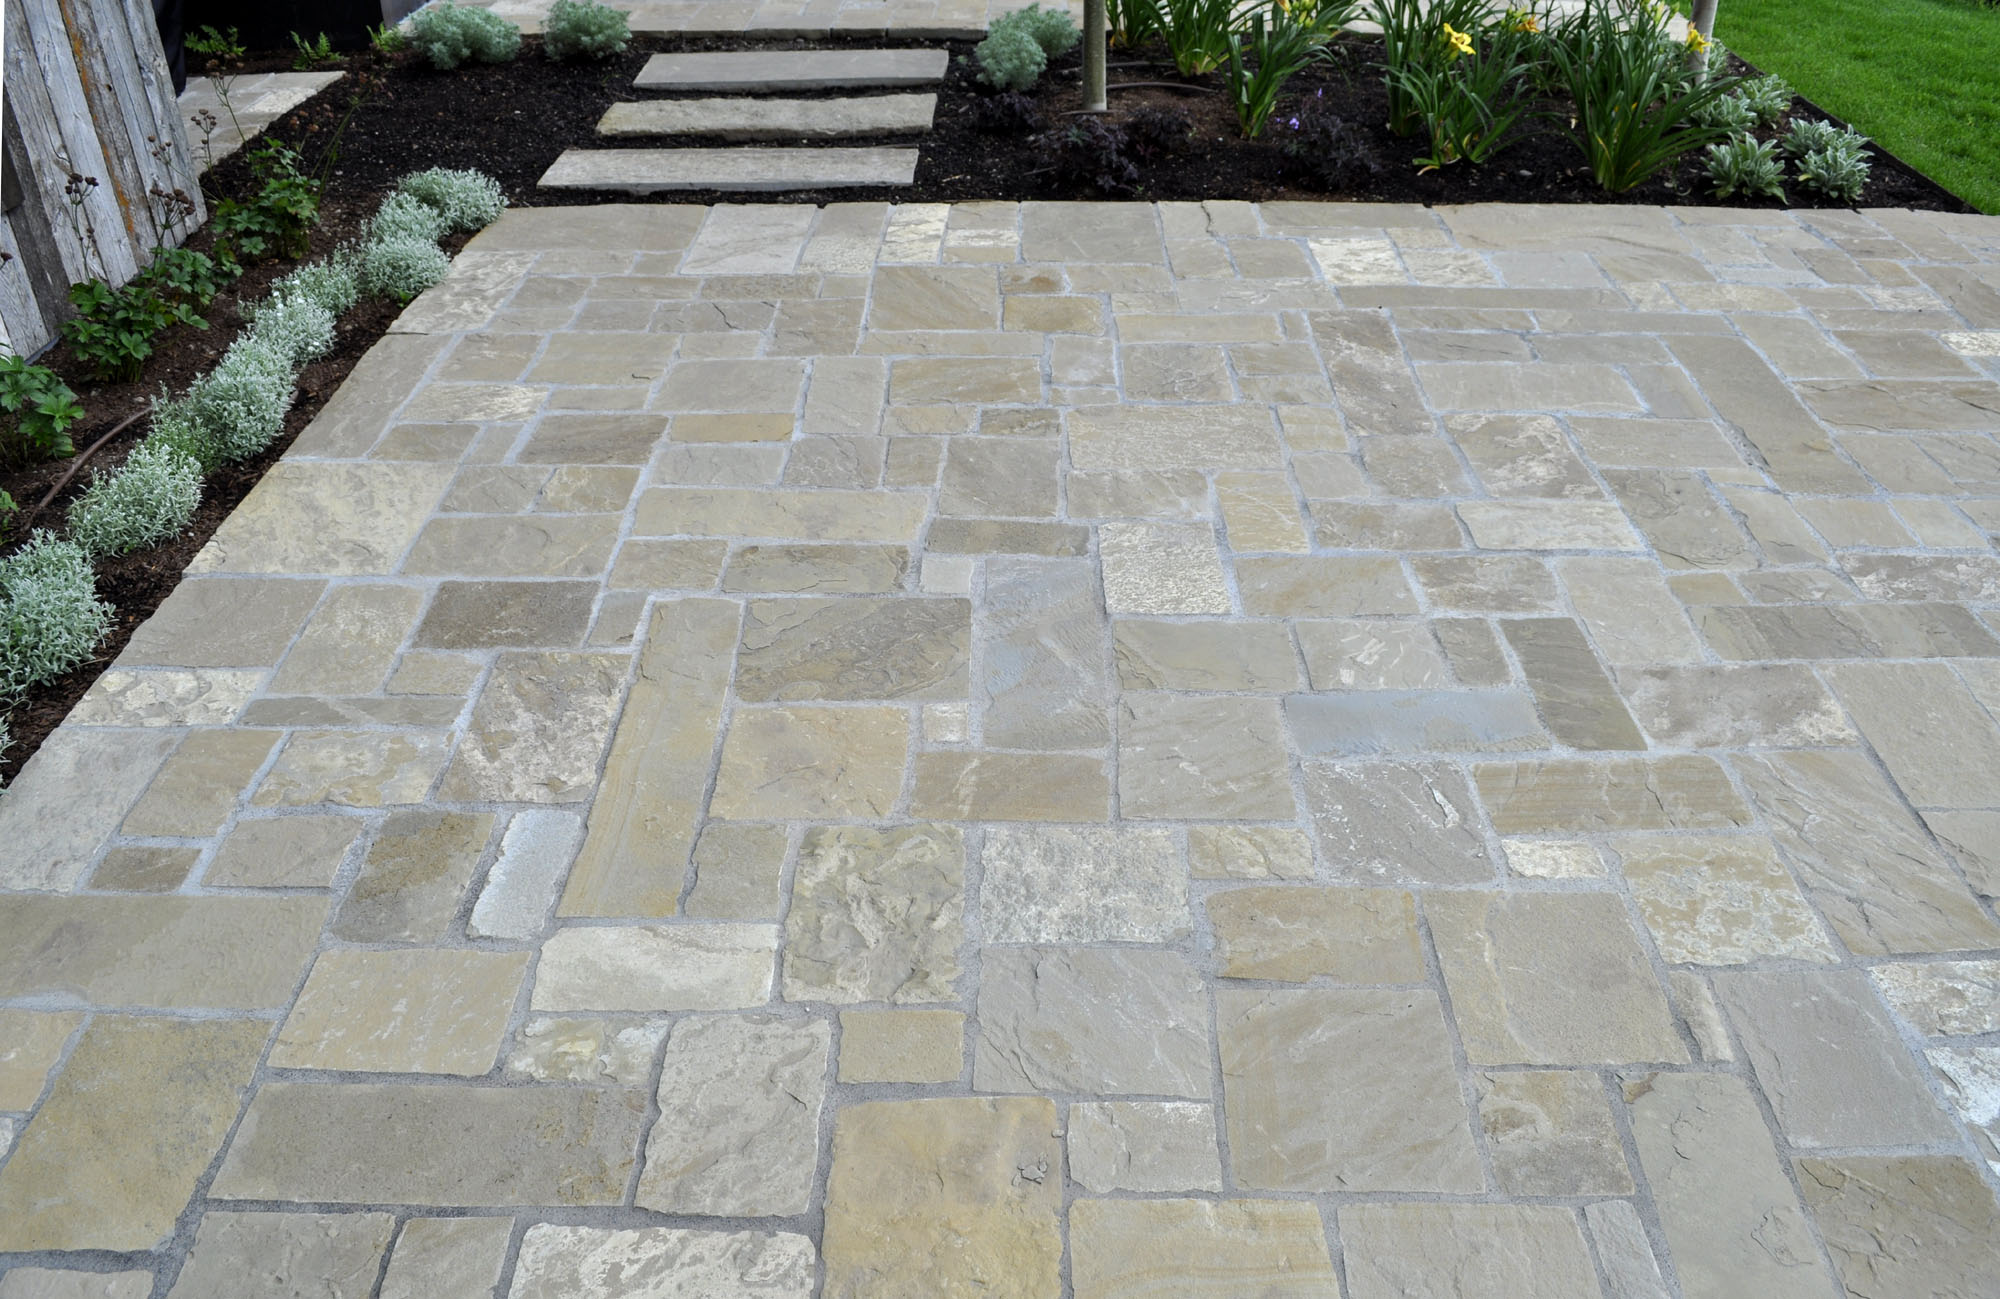 Stone Paving Stones : Frontier chopped pavers select stone